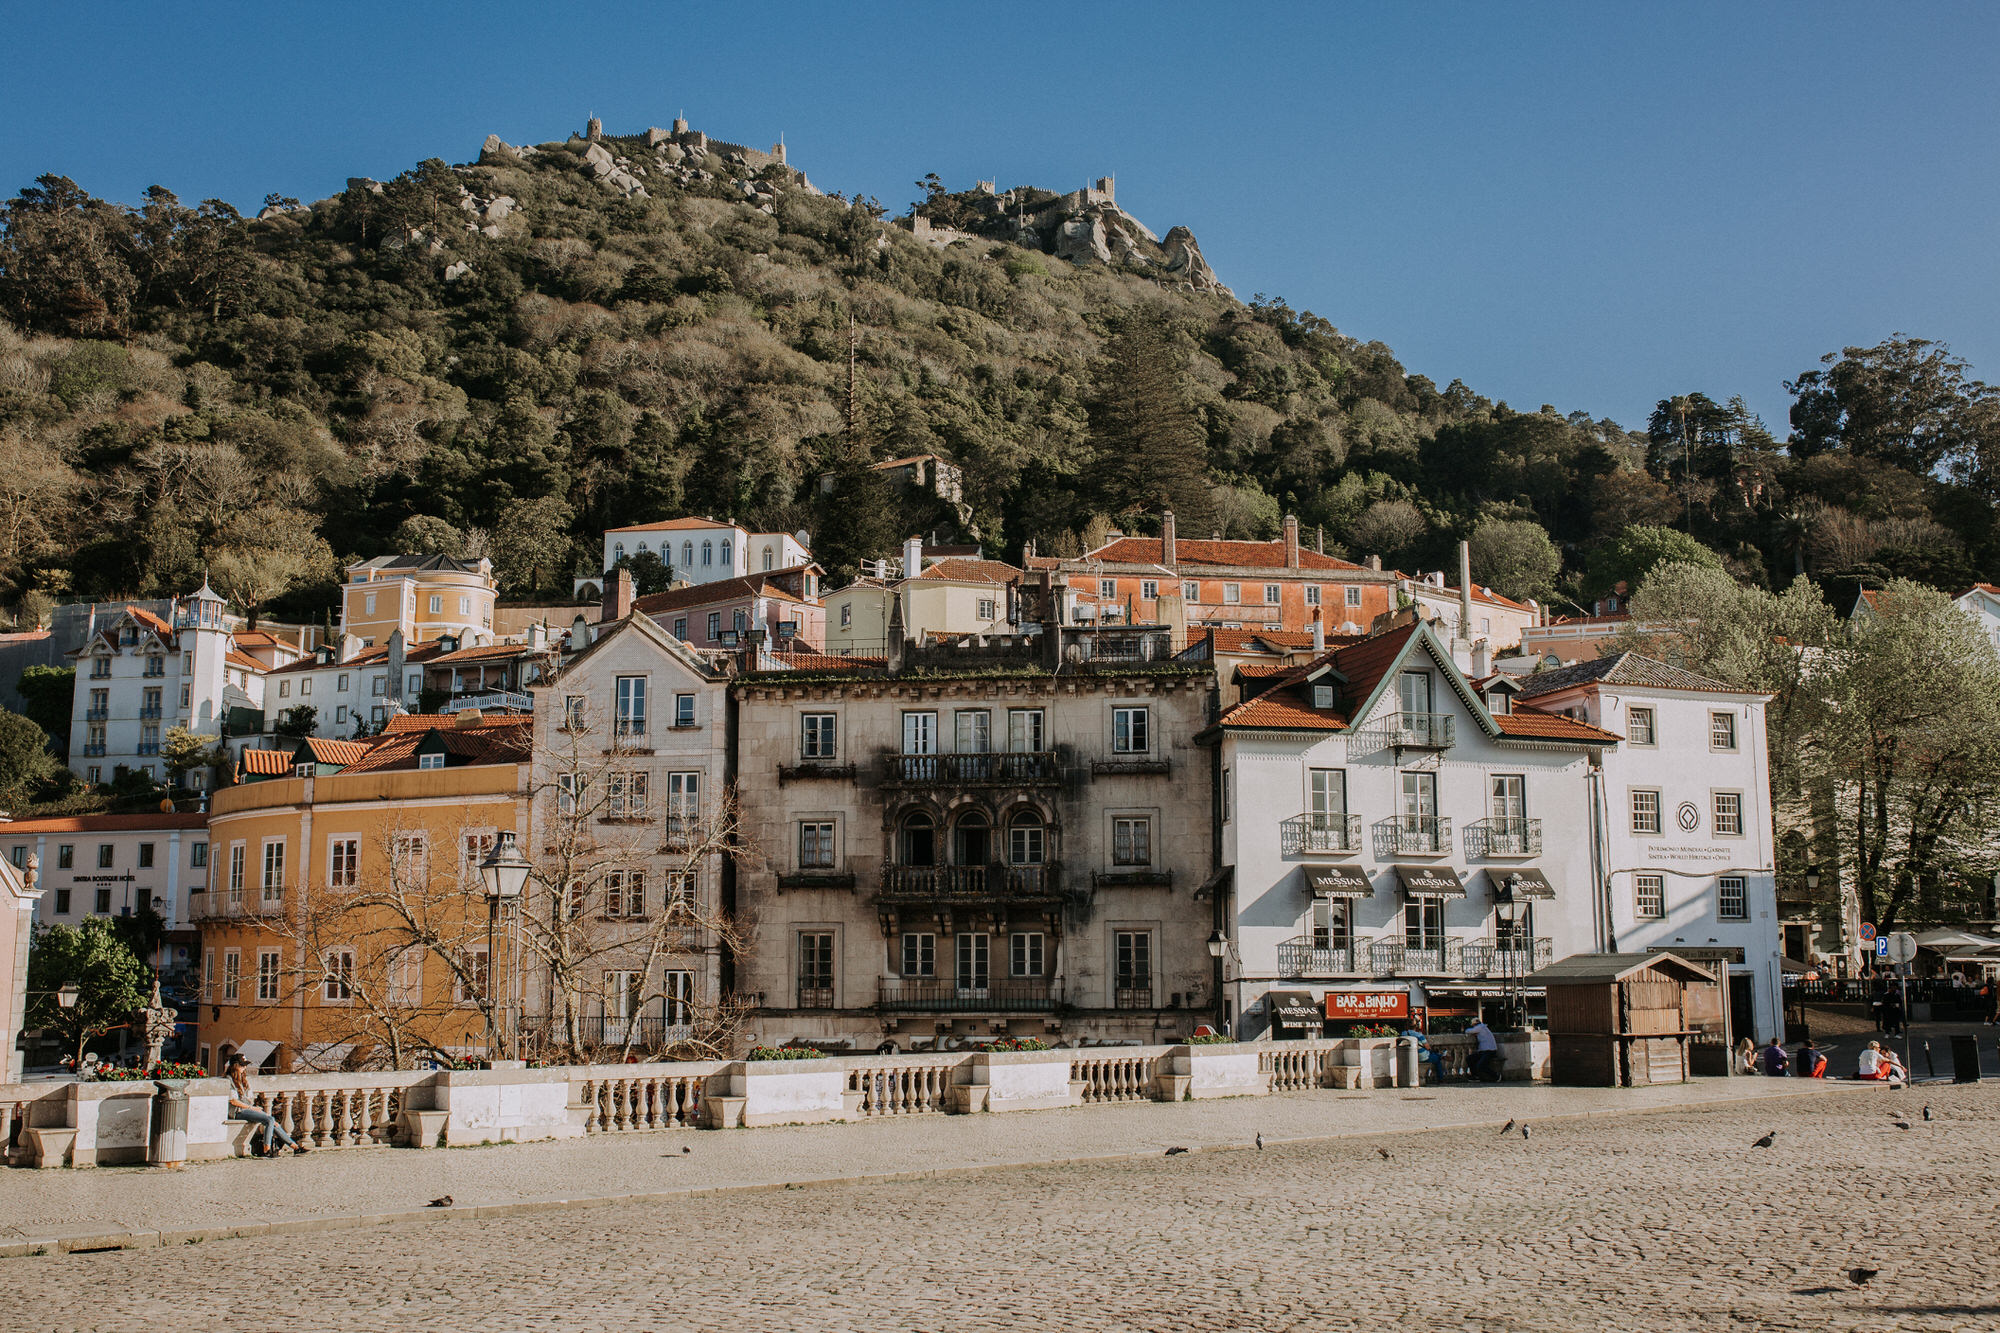 01-sessao-noivado-engagement-love-session-Sintra-lisboa-town-wedding-photography-photographer-natural-best-venue-planner-destination-filipe-santiago-fotografia-lifestyle-documentary